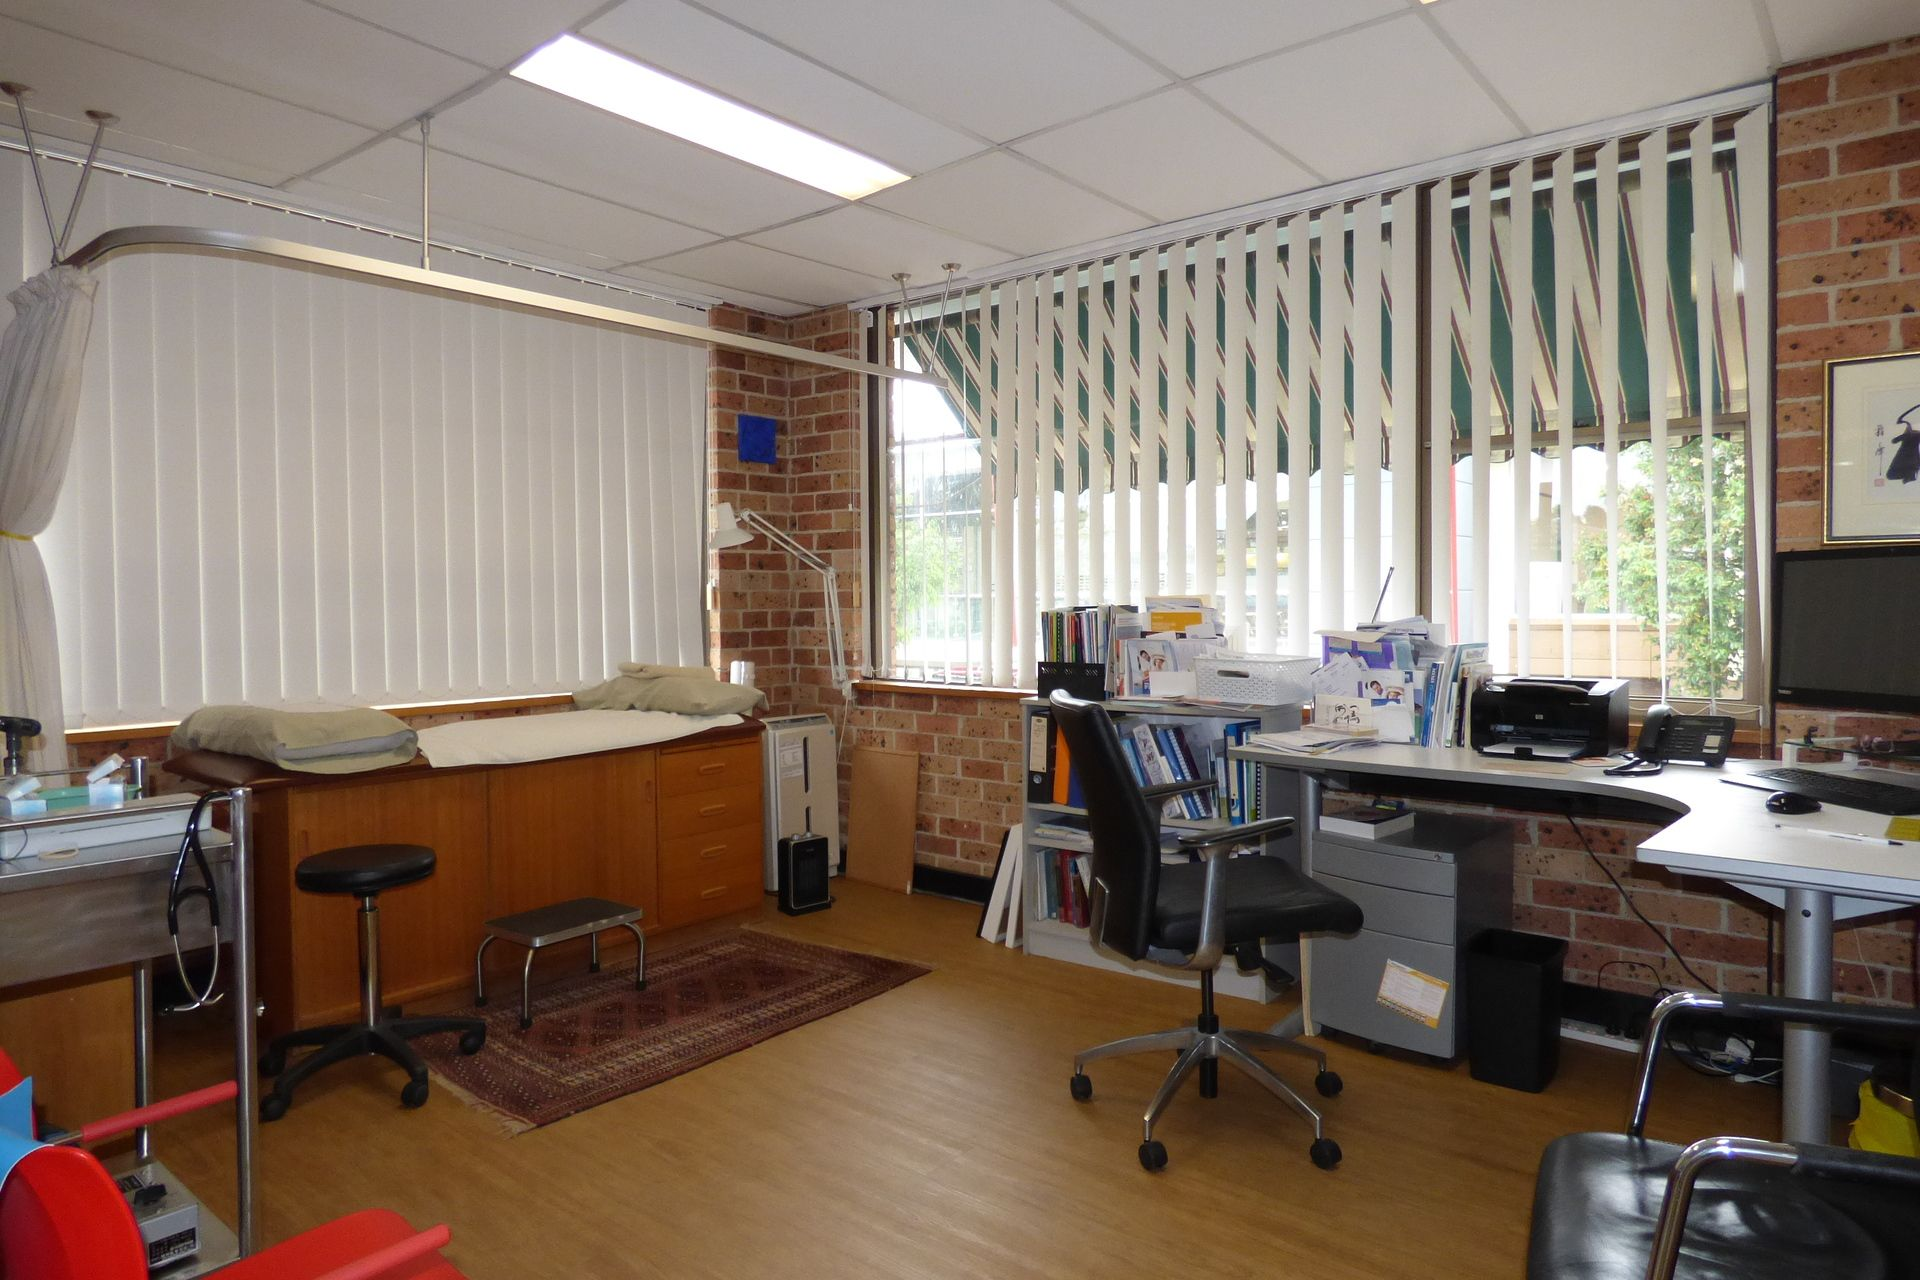 MEDICAL / OFFICE SPACE in CENTRAL MONA VALE LOCATION